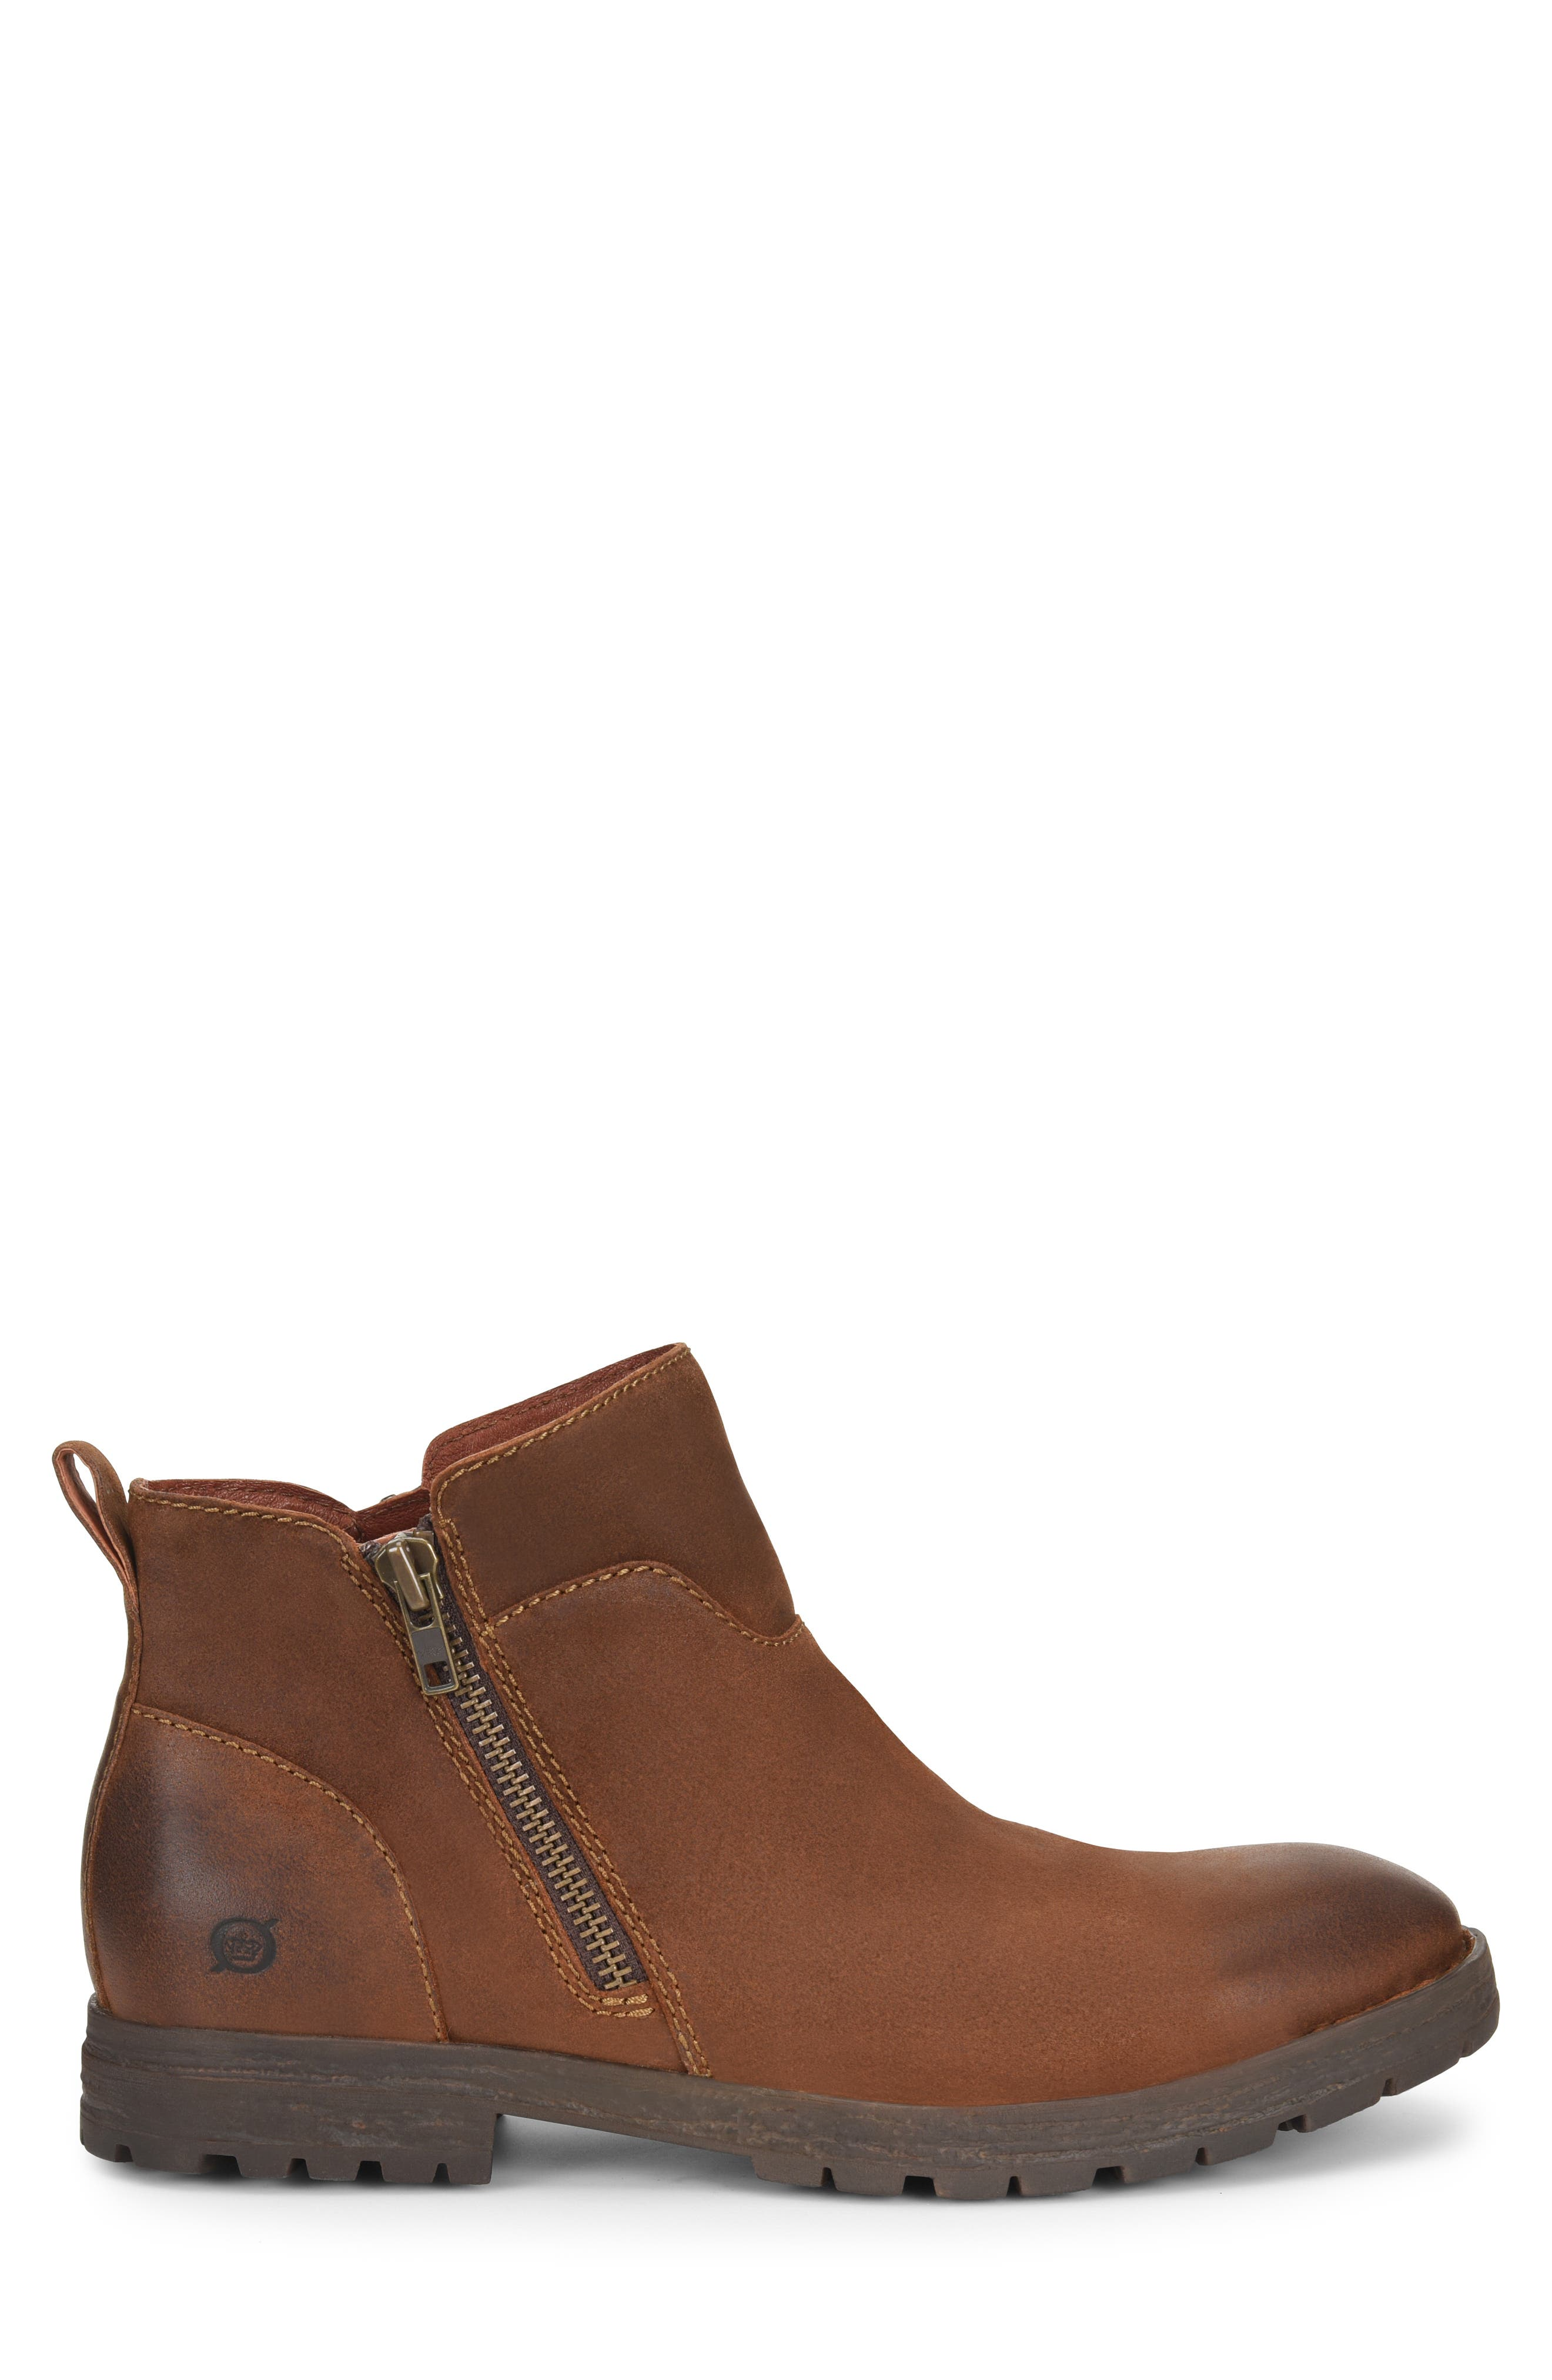 Born Ludo Zip Boot,                             Alternate thumbnail 3, color,                             RUST SUEDE